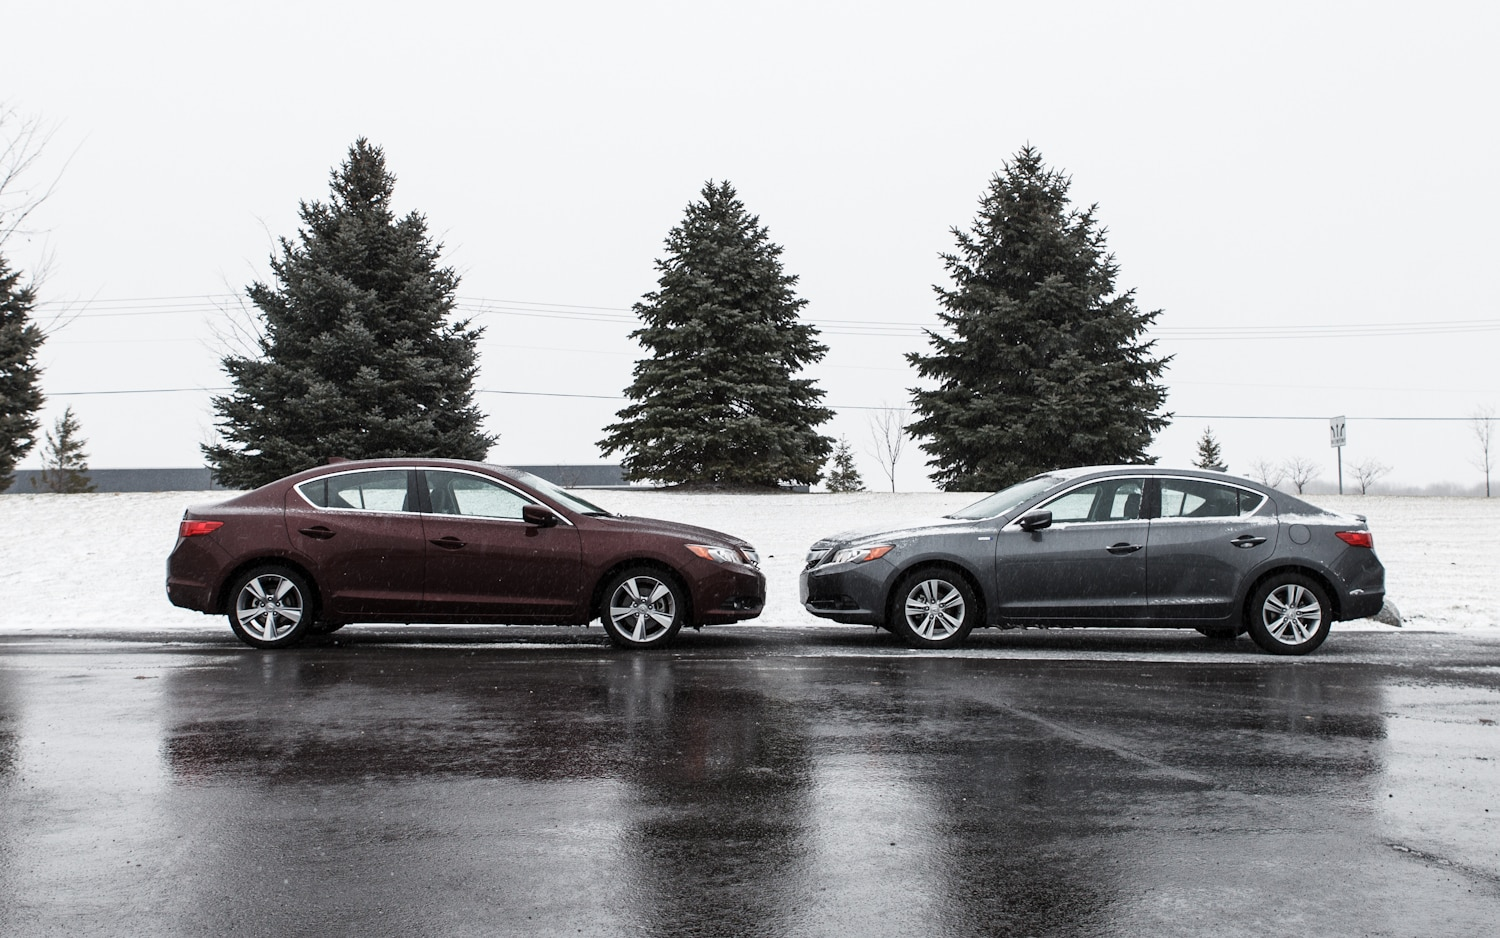 2013 Acura ILX Hybrid And 4S Acura ILX Side View 21